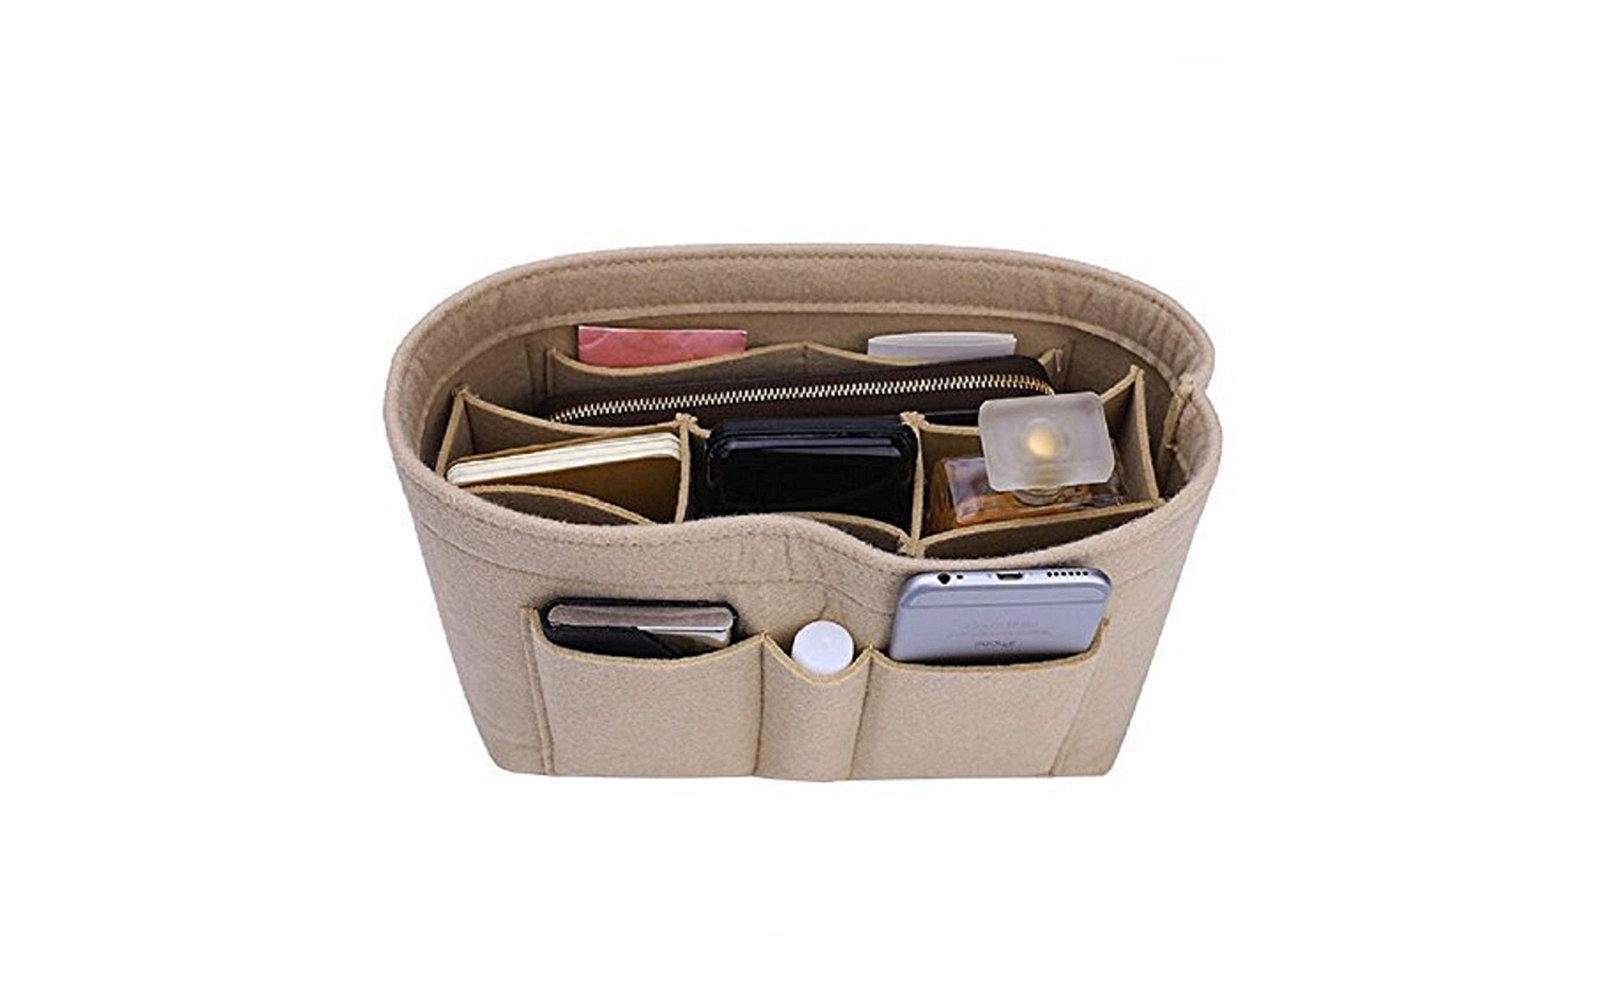 60b595f7b043 The Best Handbag Organizer Inserts, According to Reviews | Travel + ...